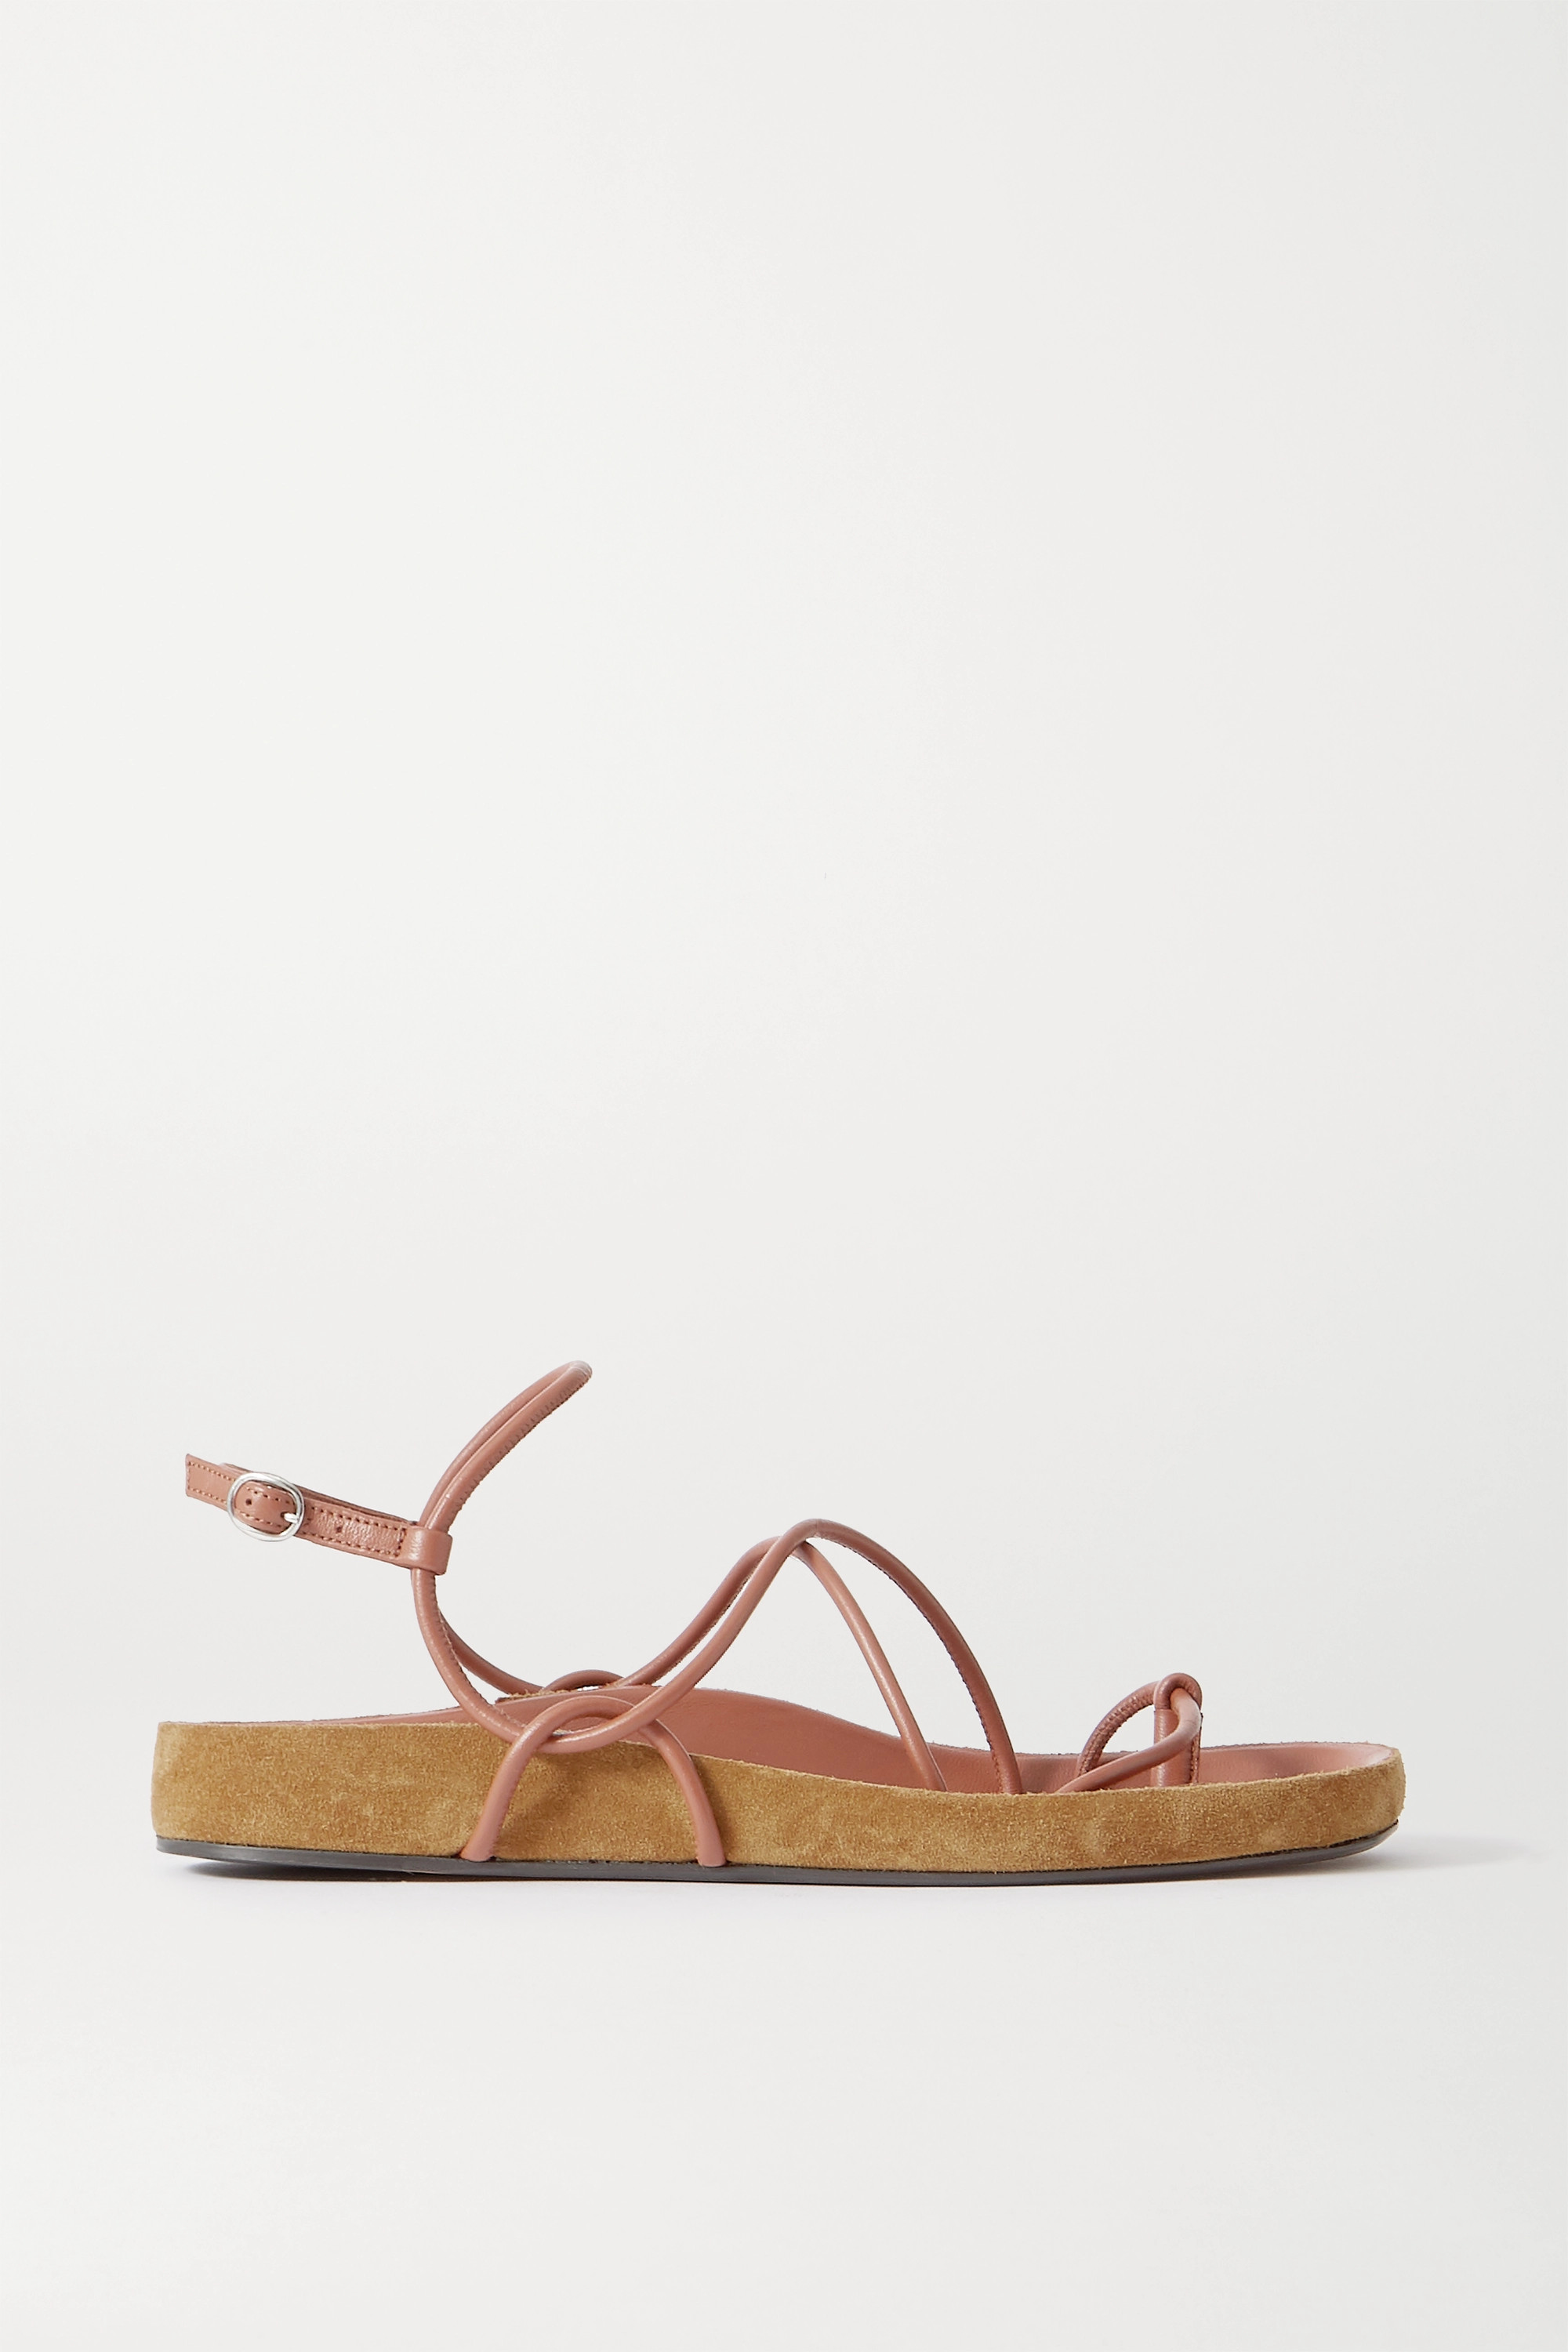 Isabel Marant Enador leather and suede sandals